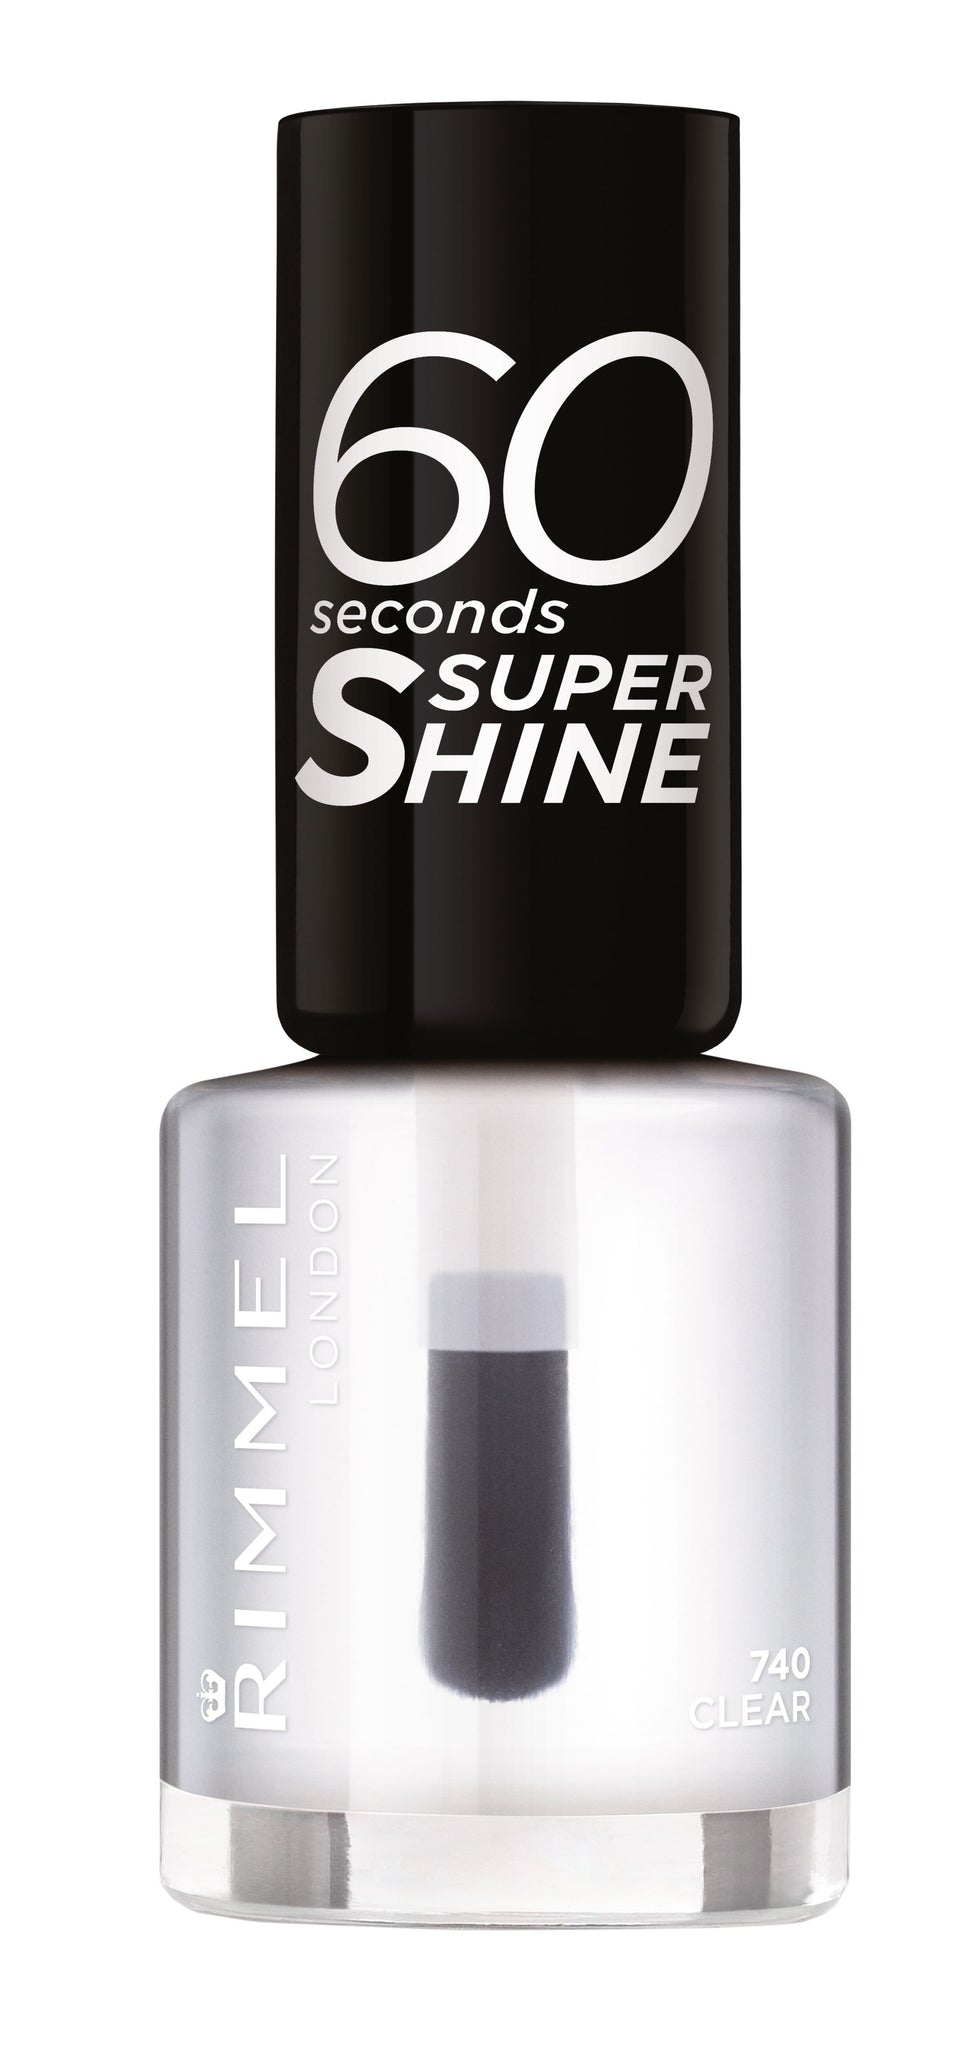 Rimmel 60 Seconds Nail Polish 740 - Clear Snatcher Online Shopping South Africa